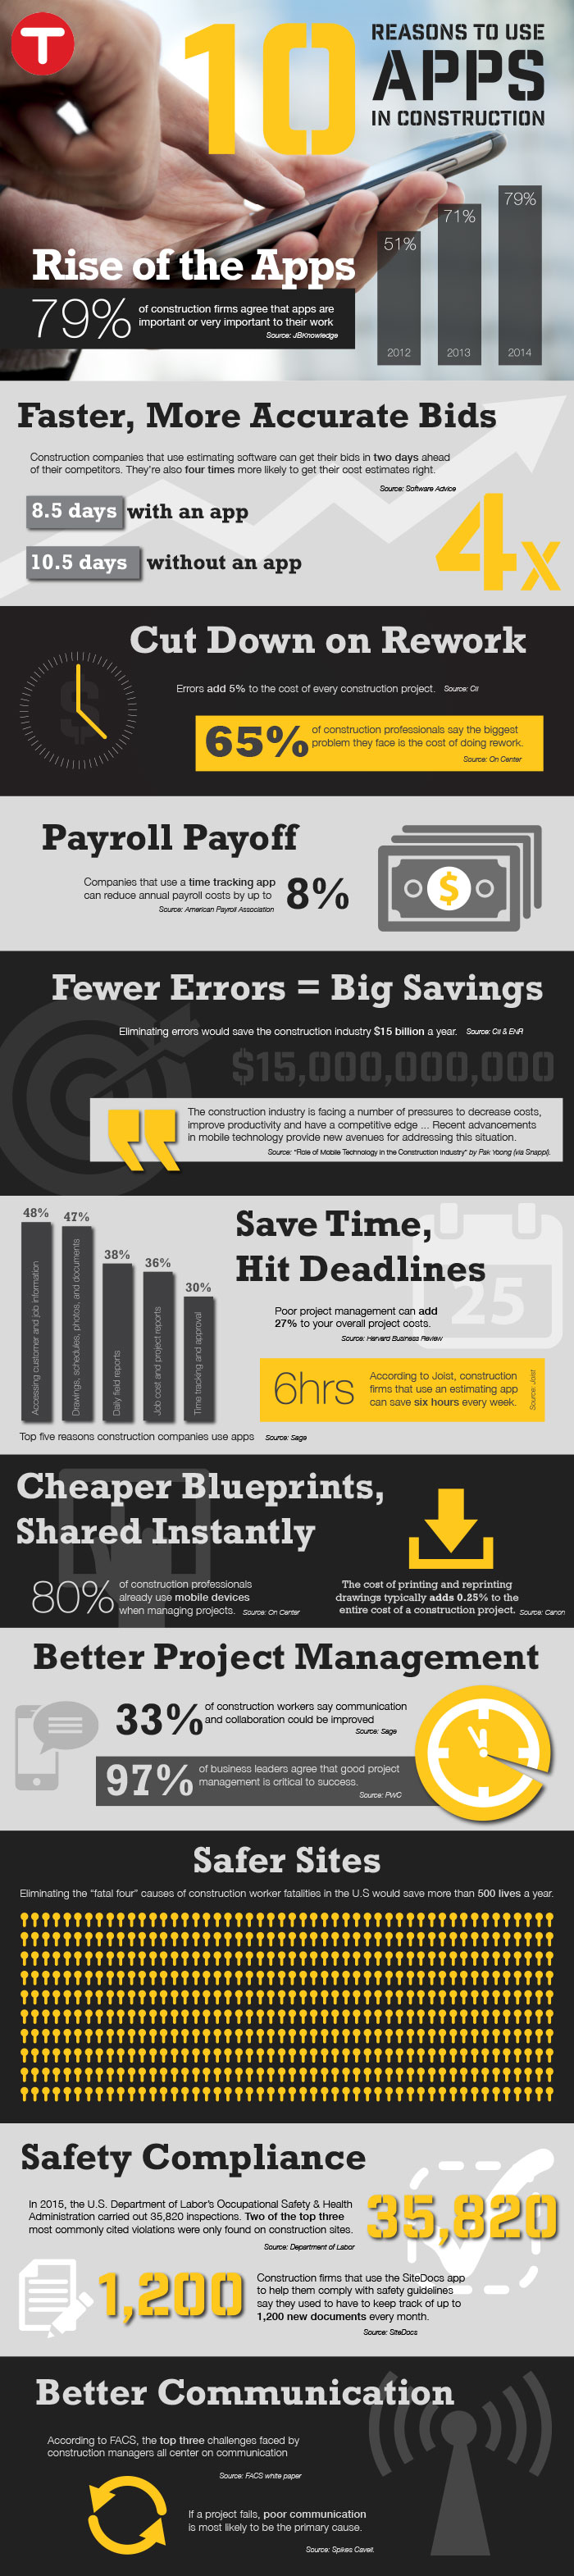 Construction Apps Infographic